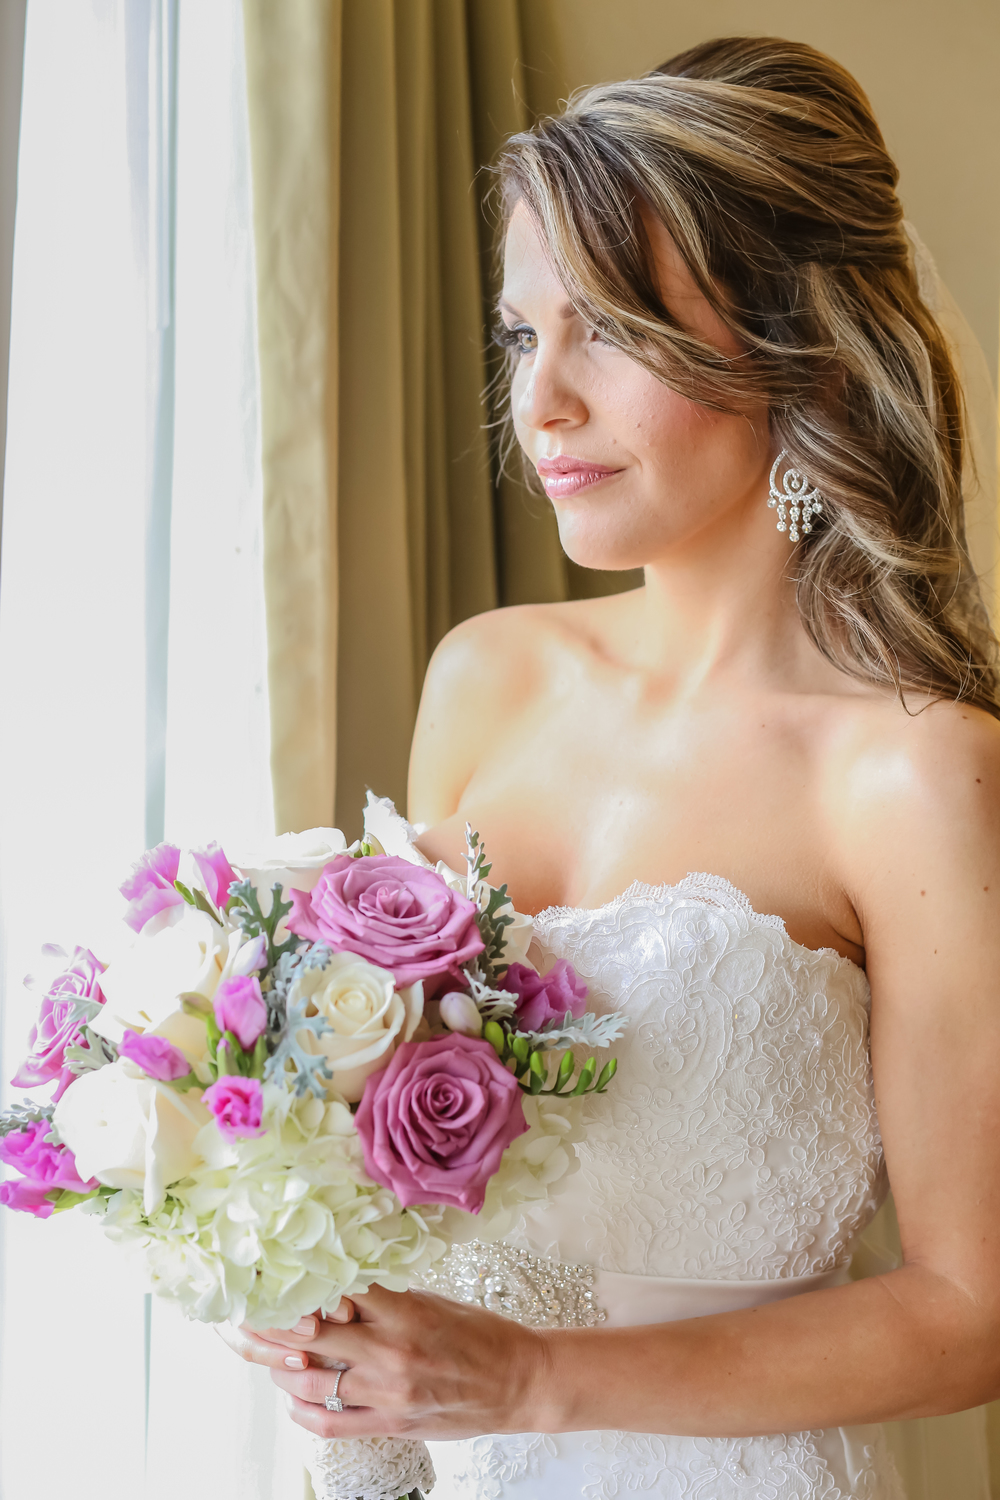 This stunning bridal bouquet consisted of hydrangea,roses, freesia, dusty miller and lisianthus.